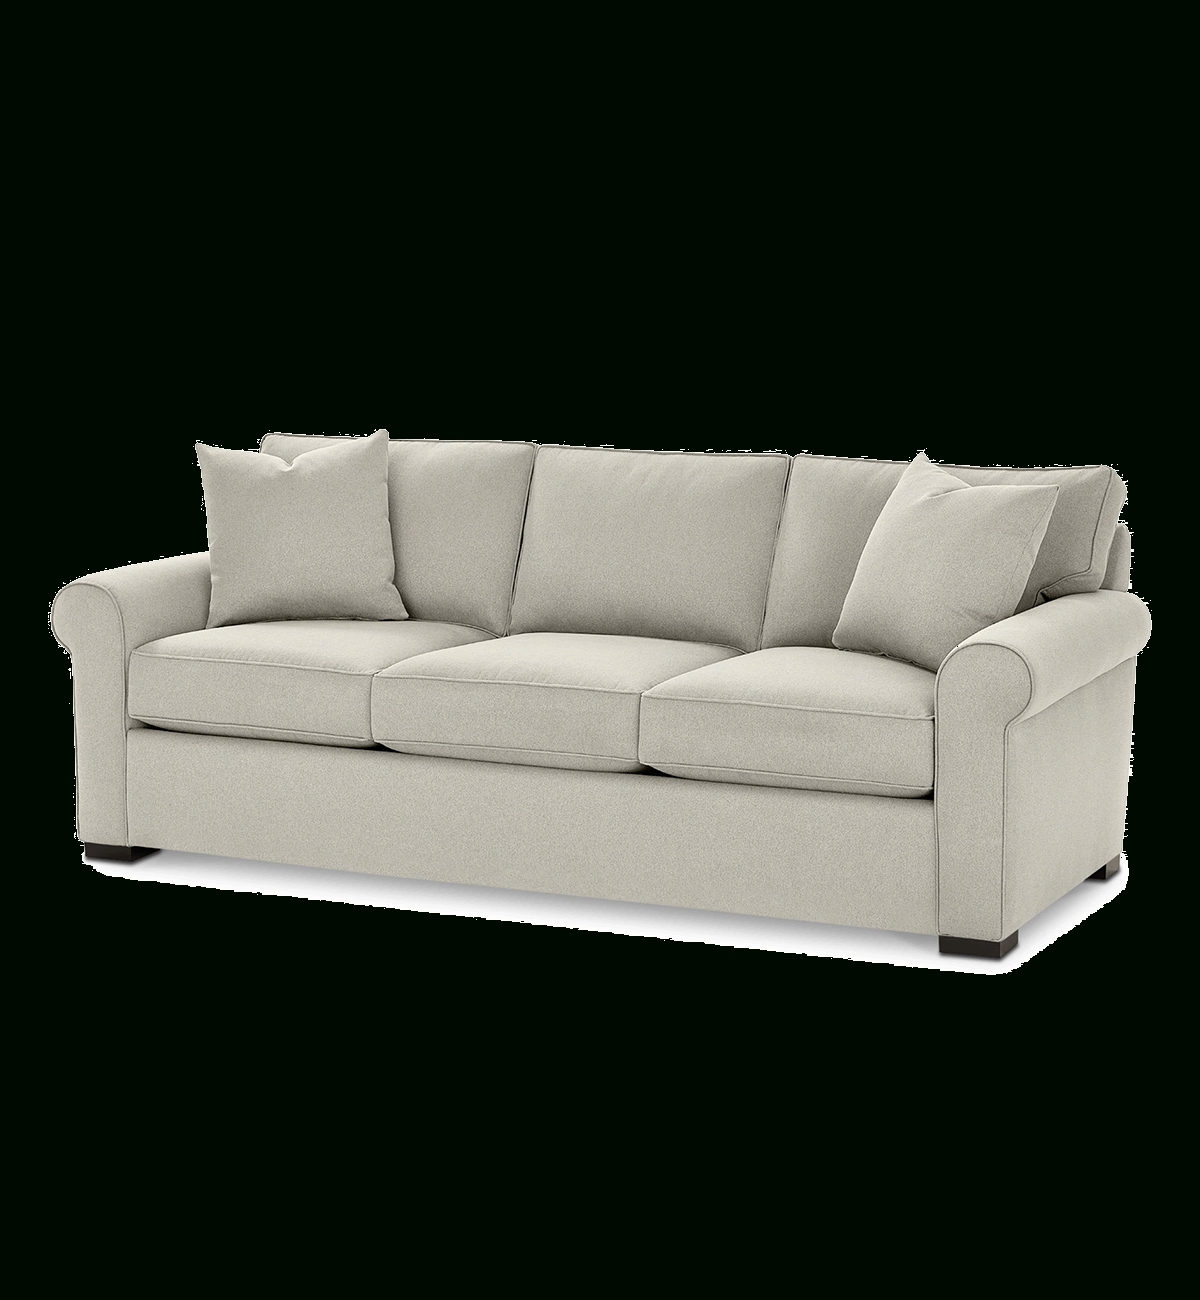 Favorite Macys Leather Sofas Intended For Leather Couches And Sofas – Macy's (View 3 of 15)